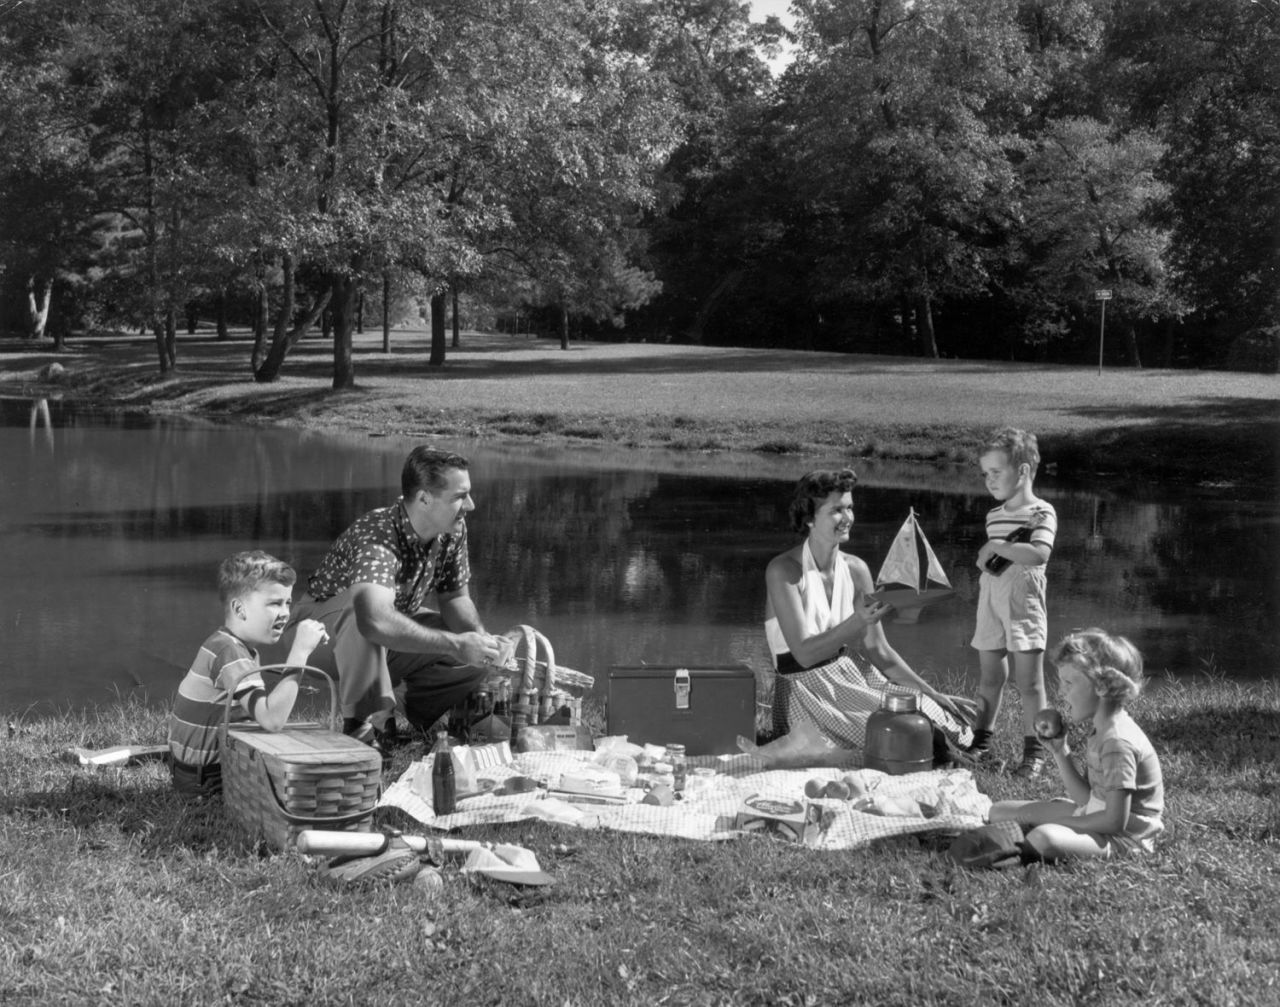 12 Vintage Photos That Will Make You Want to Revive the Lost Art of Summer